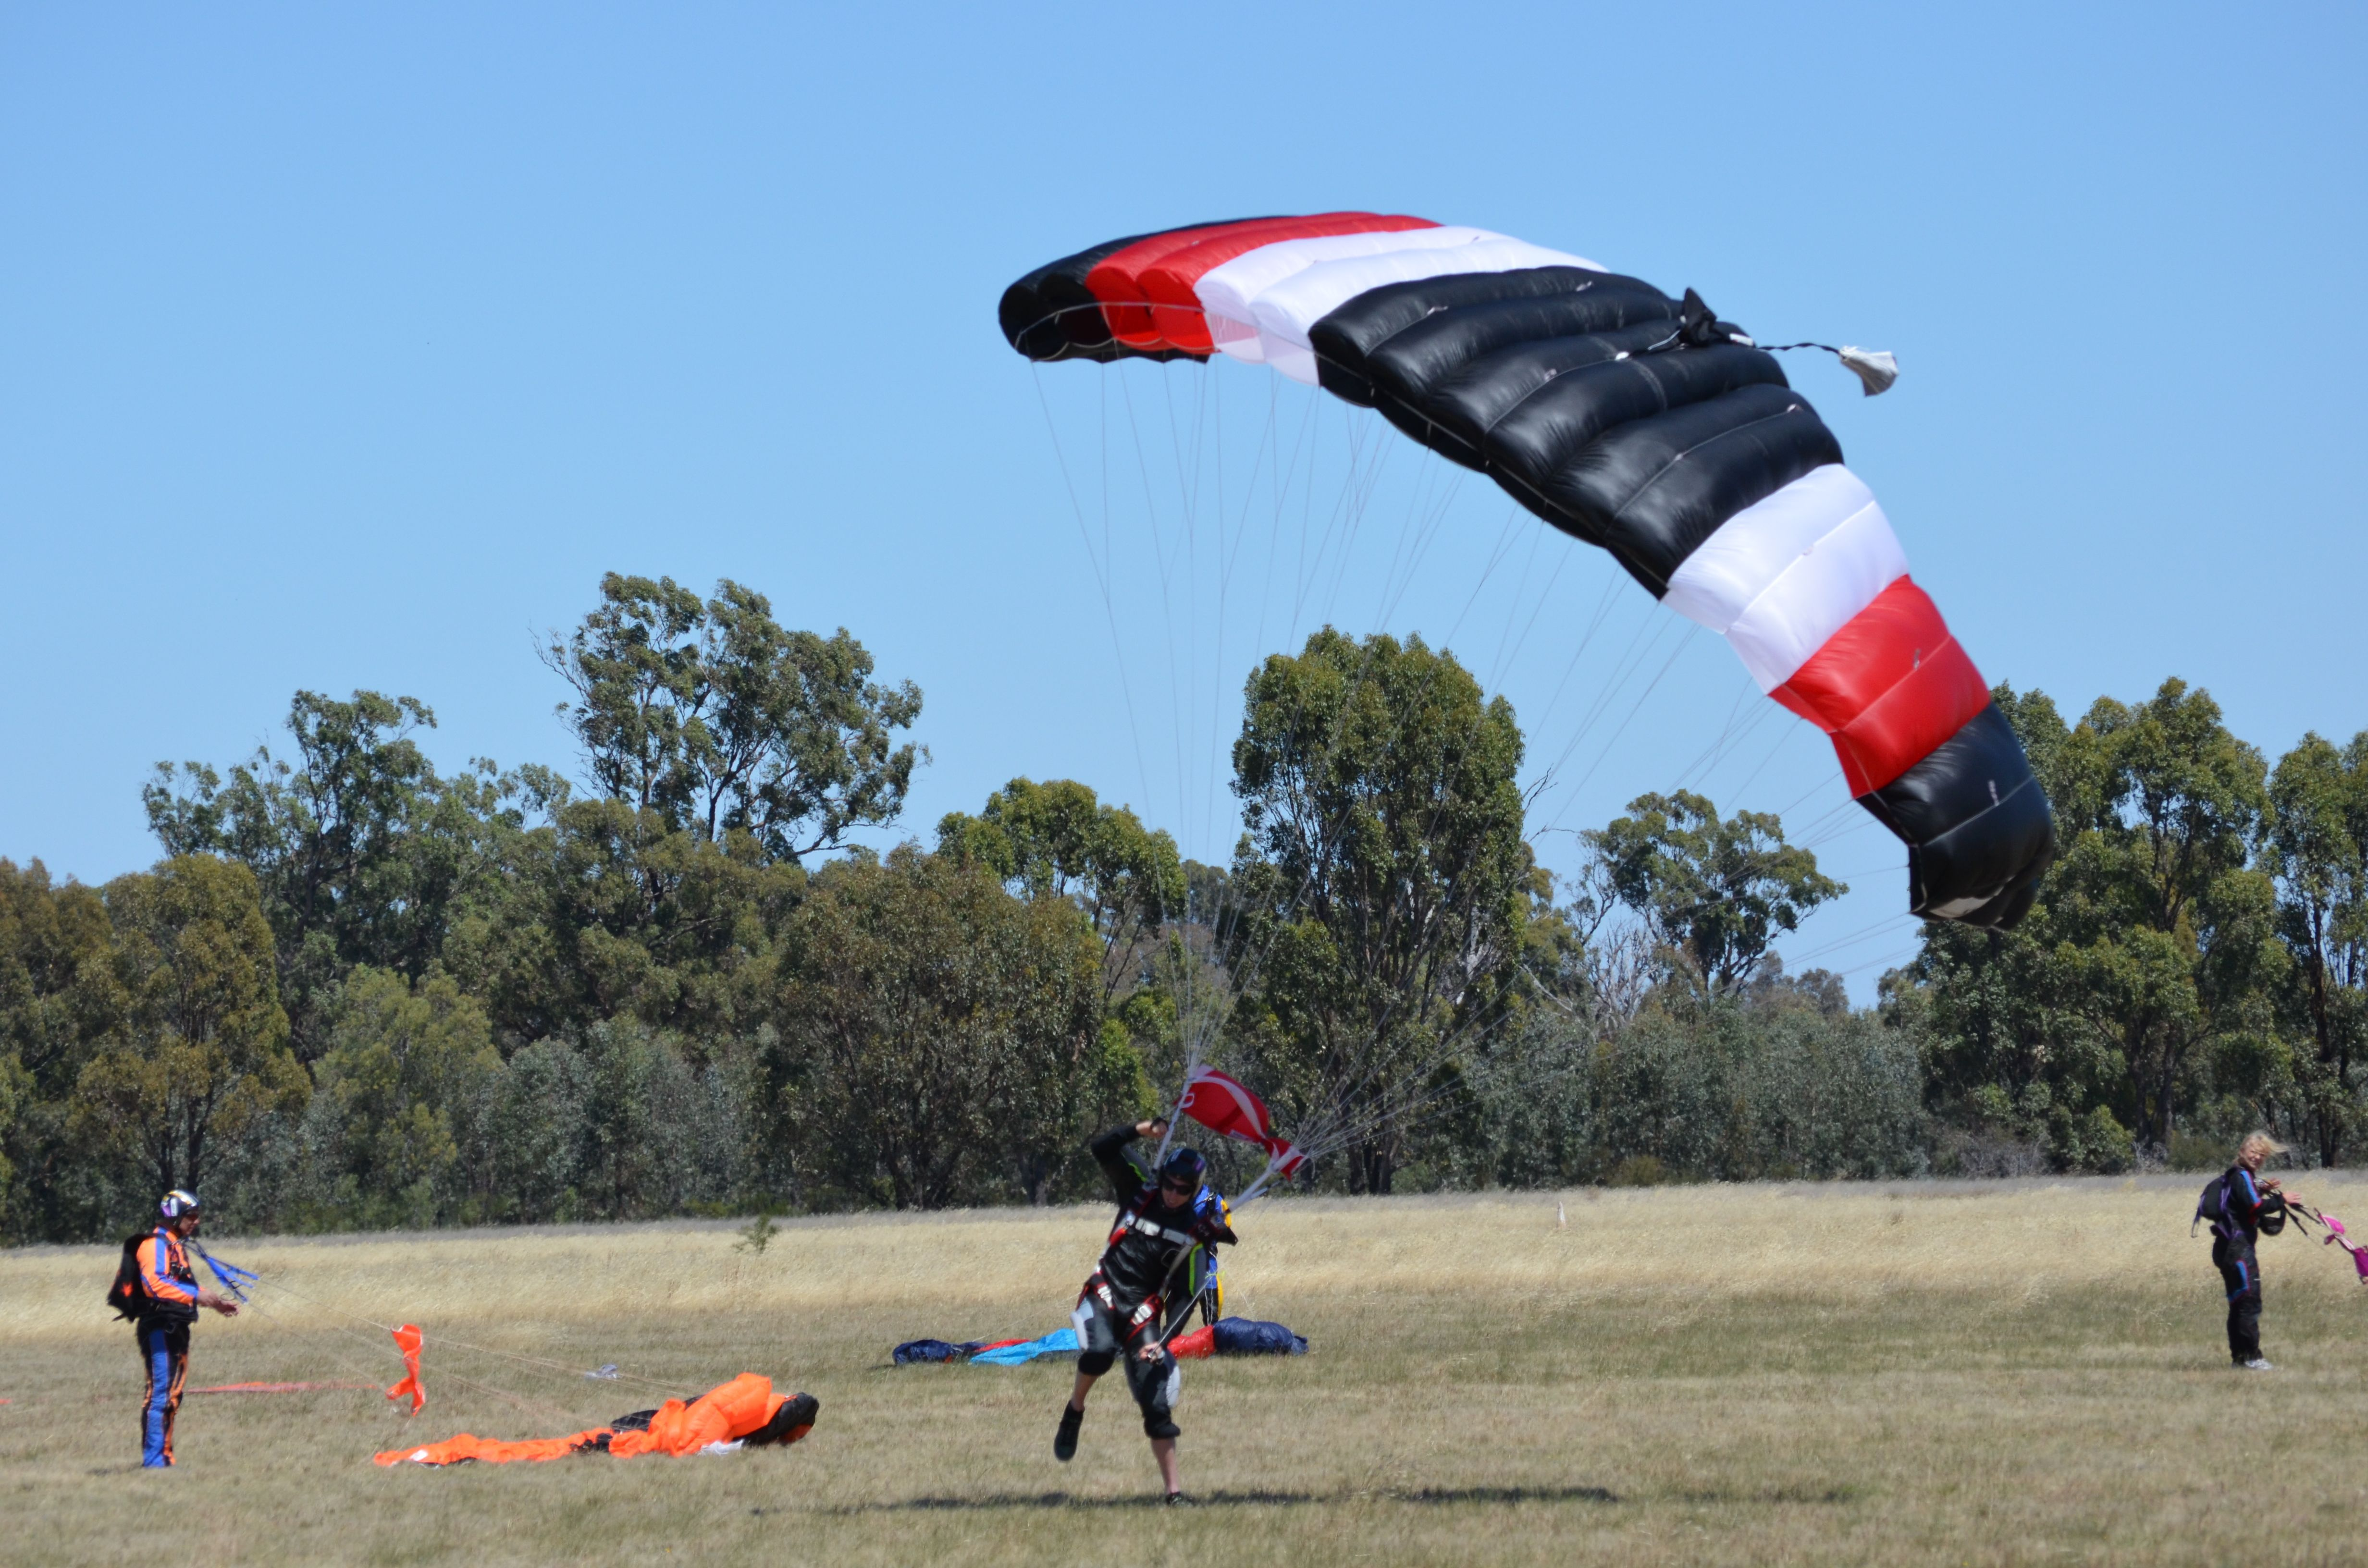 Landing the jump at Skydiving Melbourne